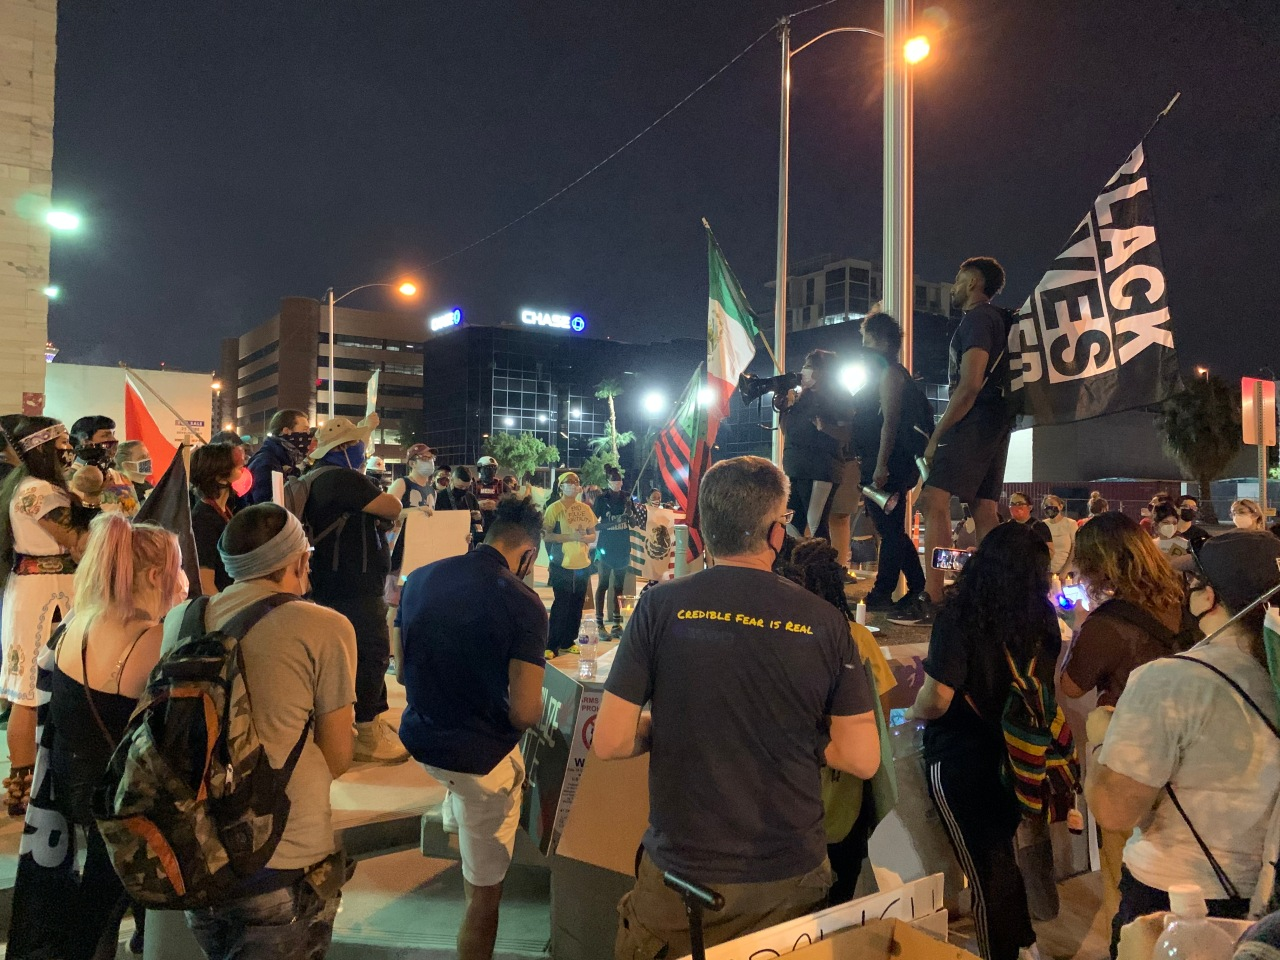 Protesters support immigrants, Black Lives Matter during march